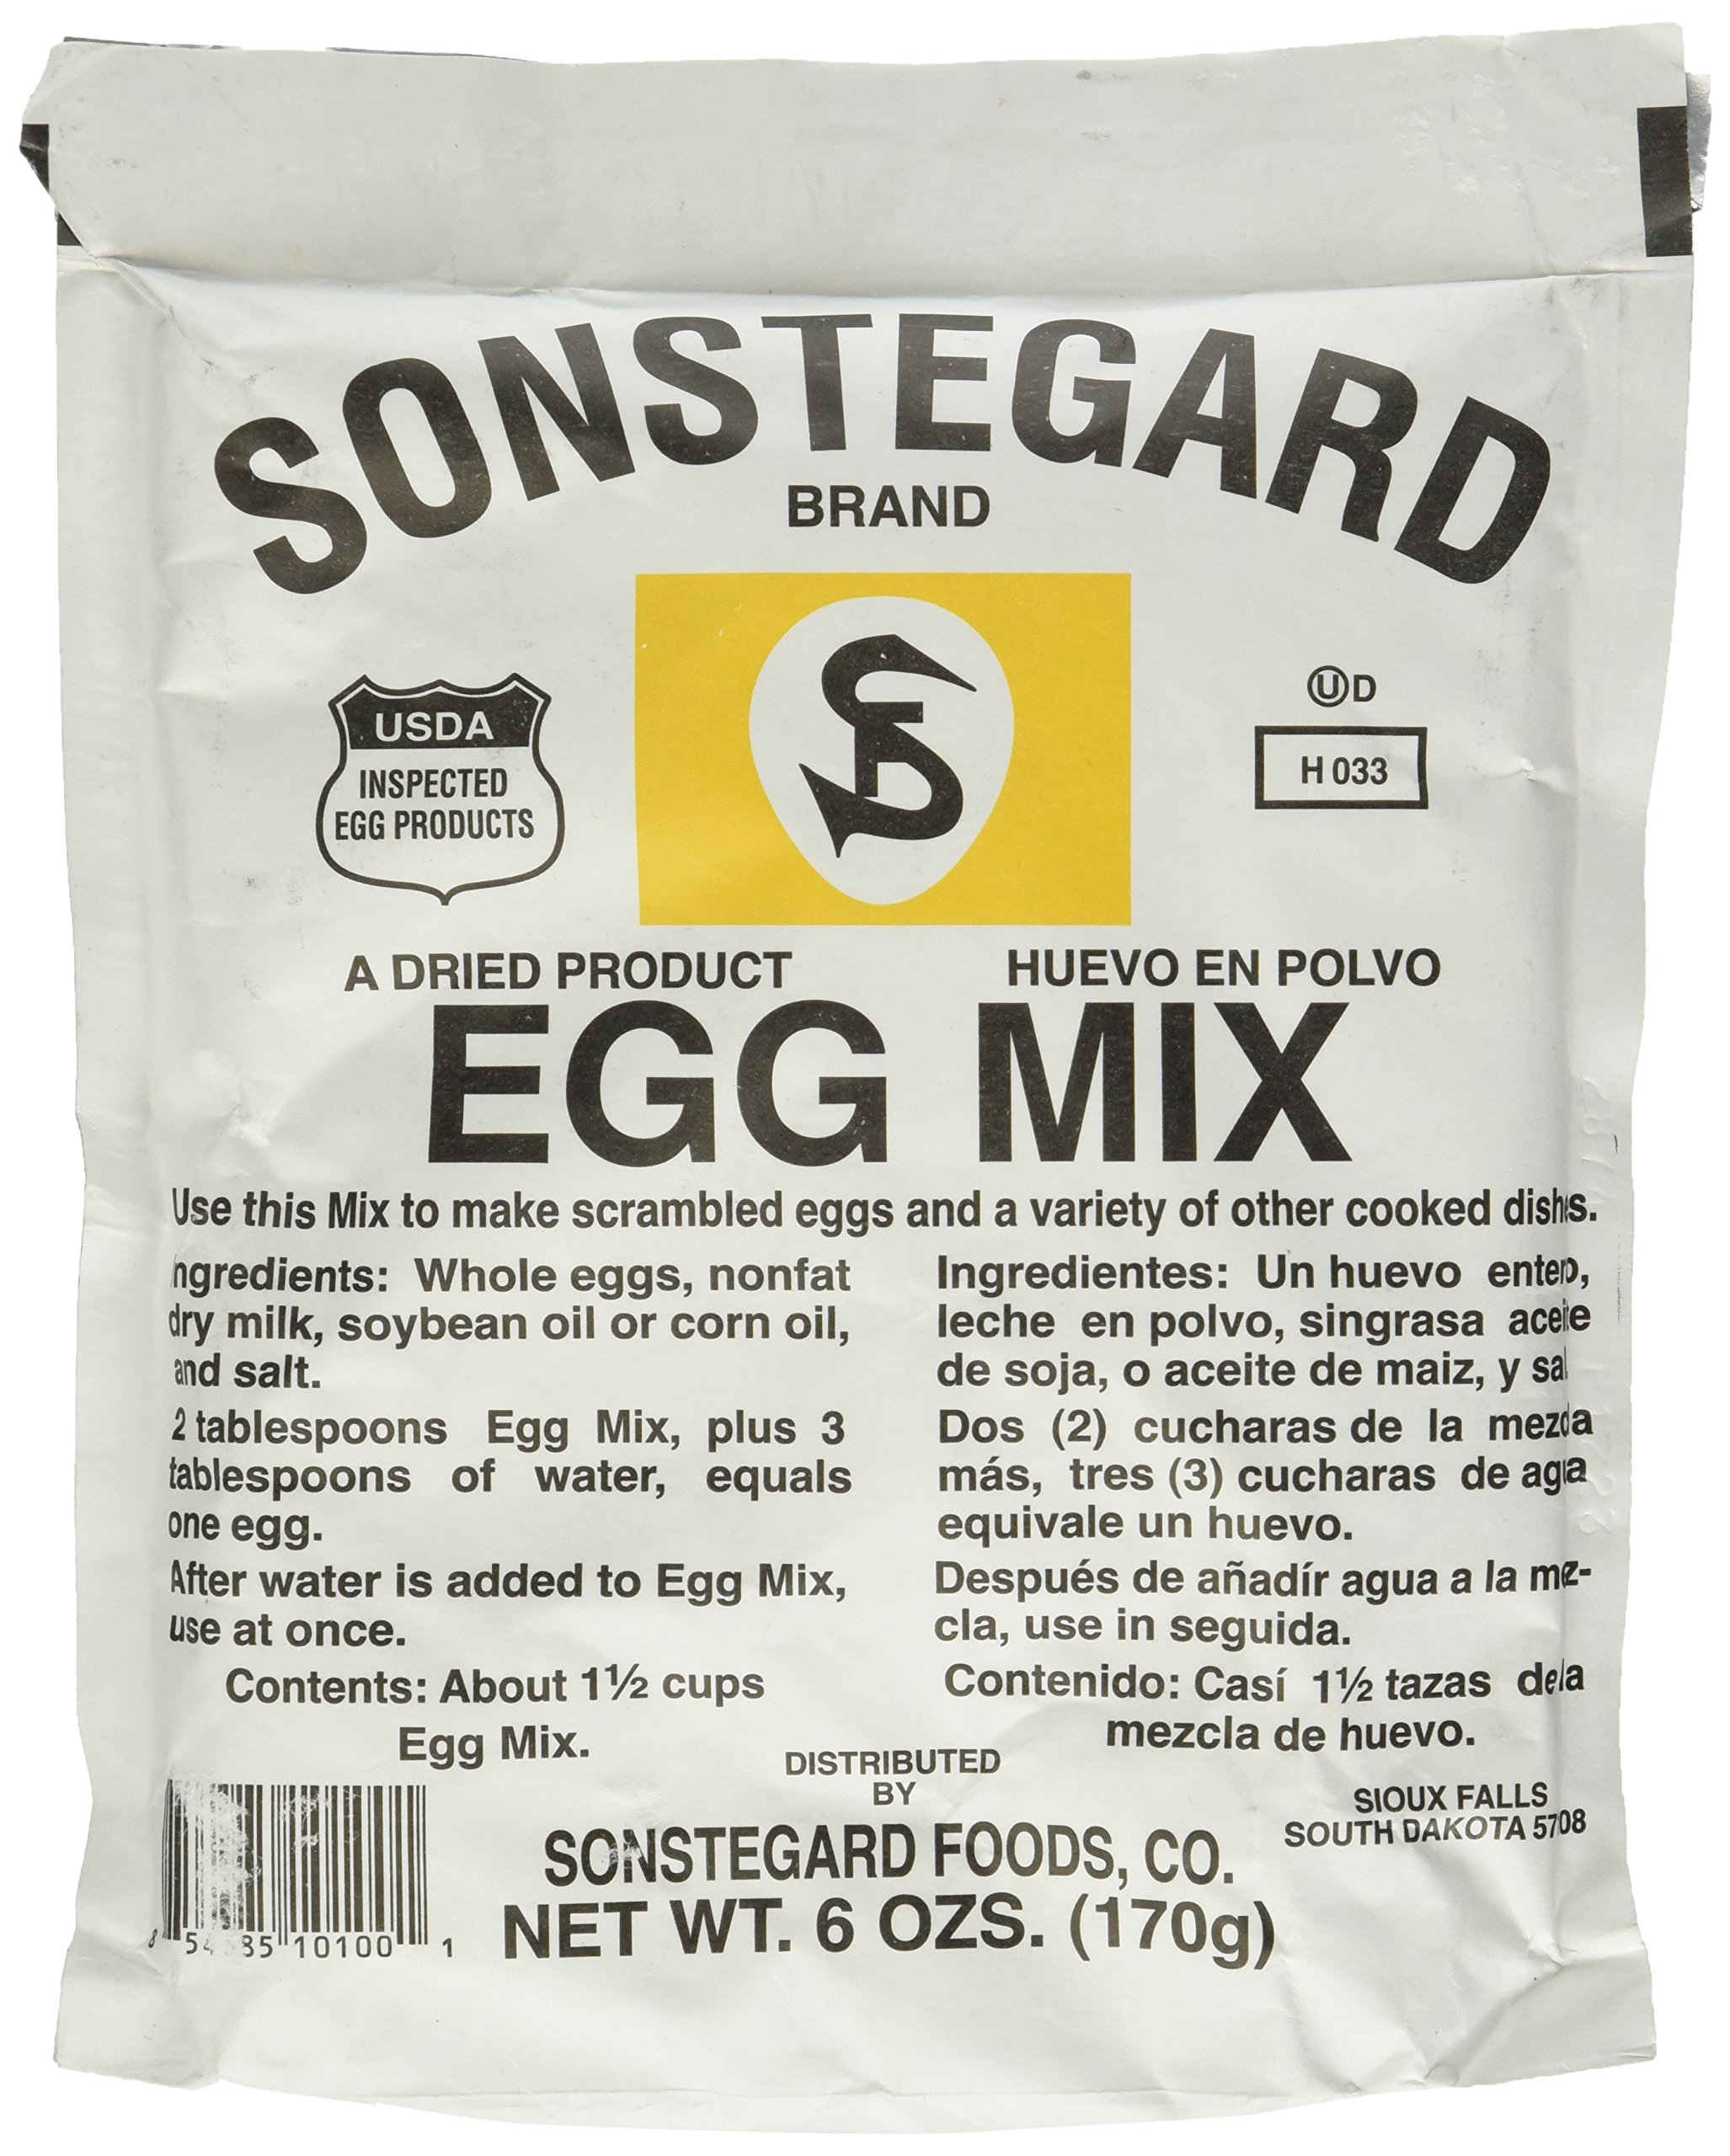 Powdered Eggs Dried Egg Mix for Scrambled Eggs, Baking, Camping 6 oz by Sonstegard by Sonstegard (Image #1)